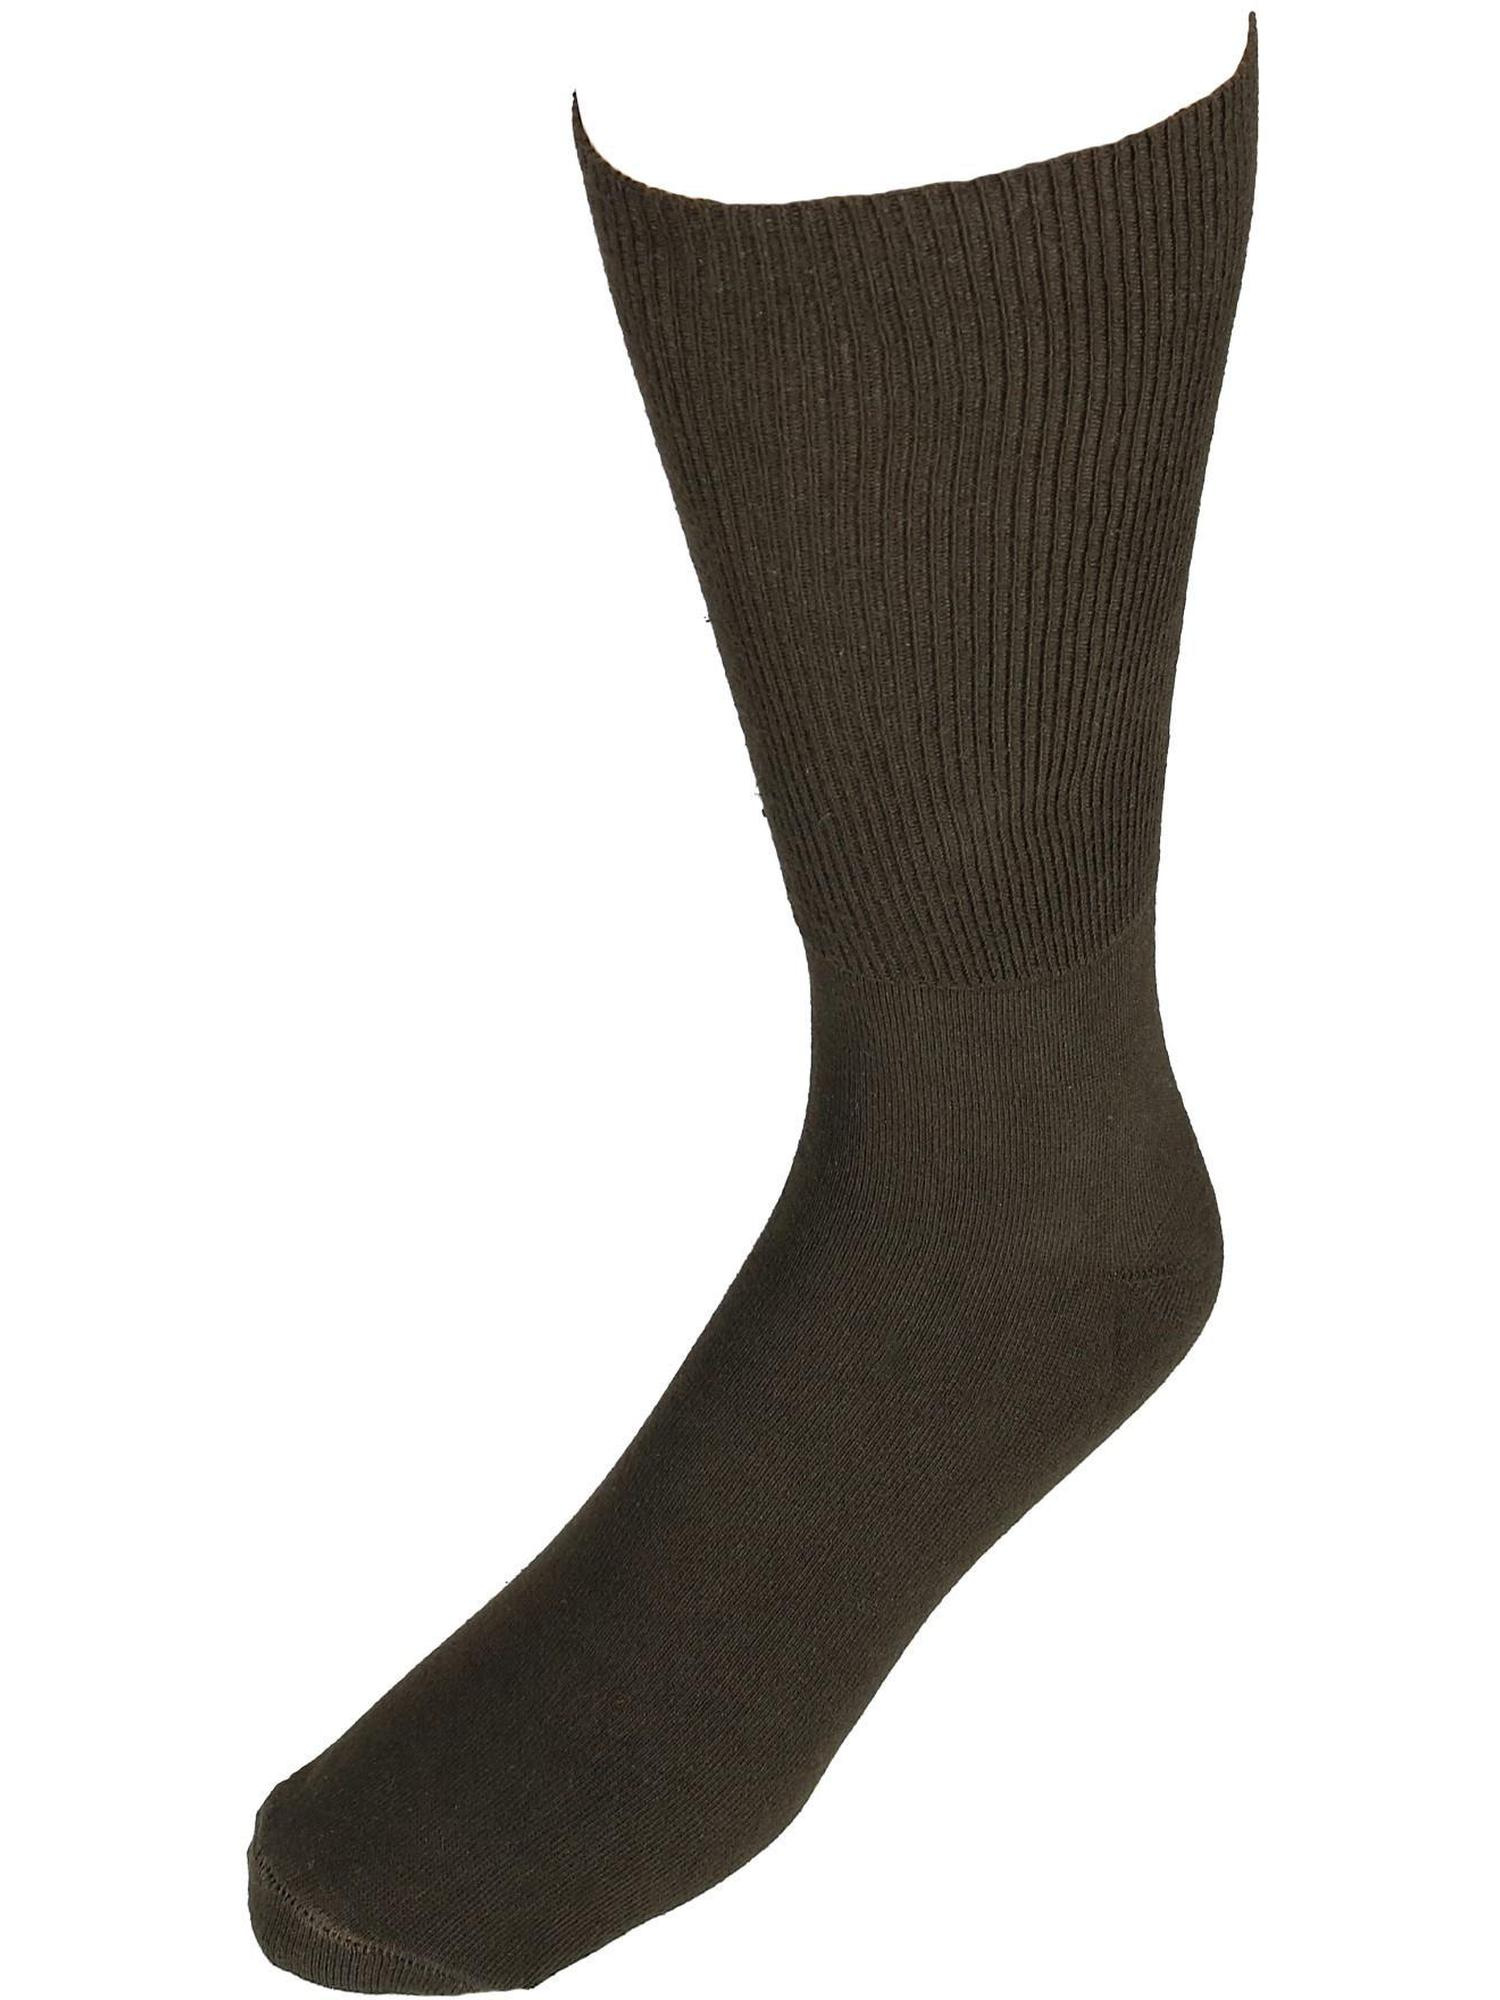 Men's Cotton Wide Dress Socks (Big & Tall Available)